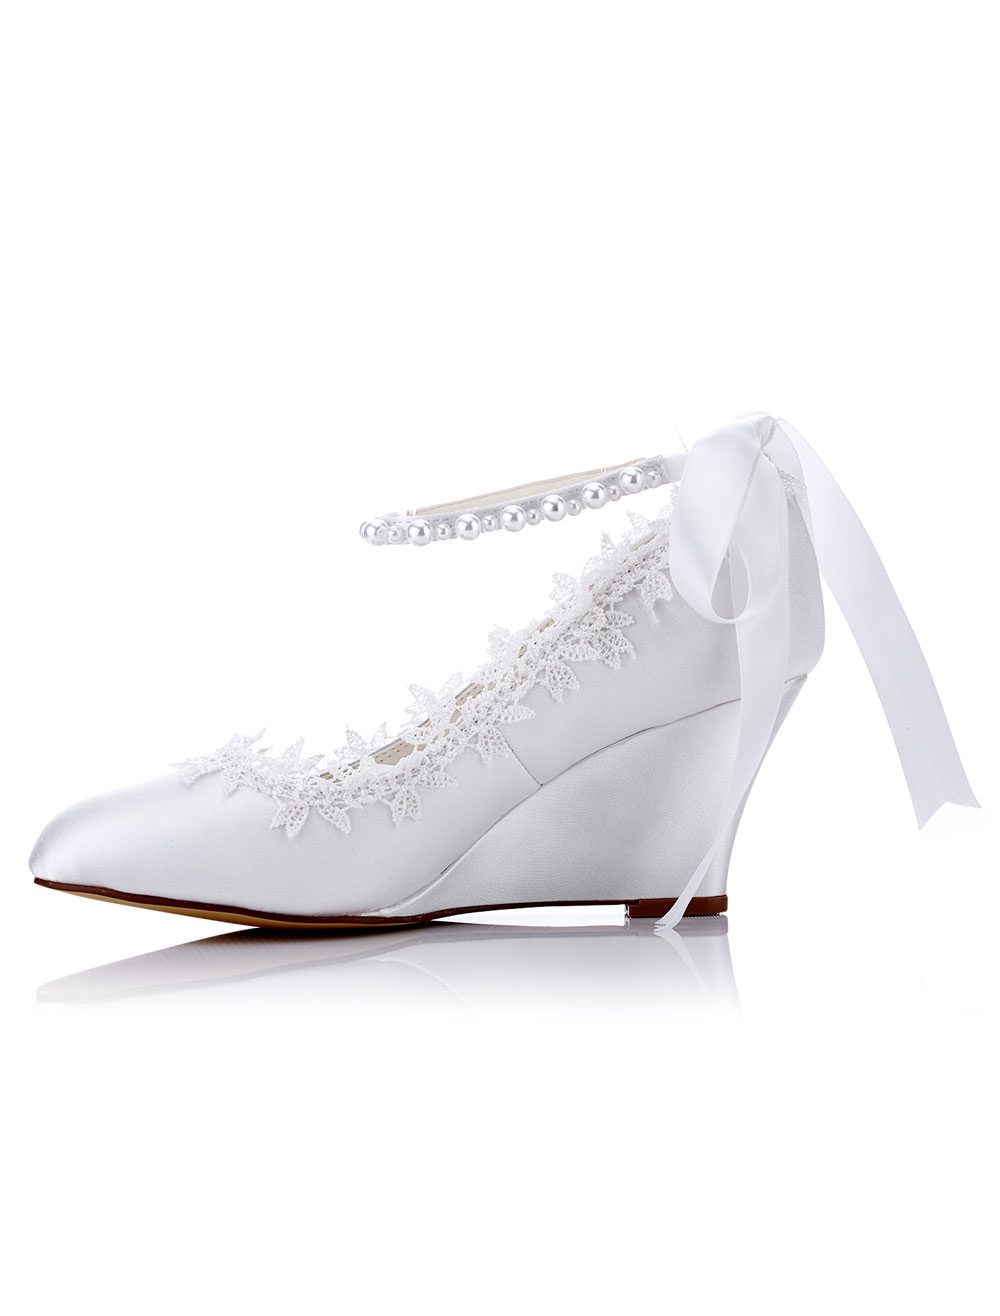 White Wedding Shoes Satin Pointed Toe Rhinestones Beaded Lace Up Bridal Wedges